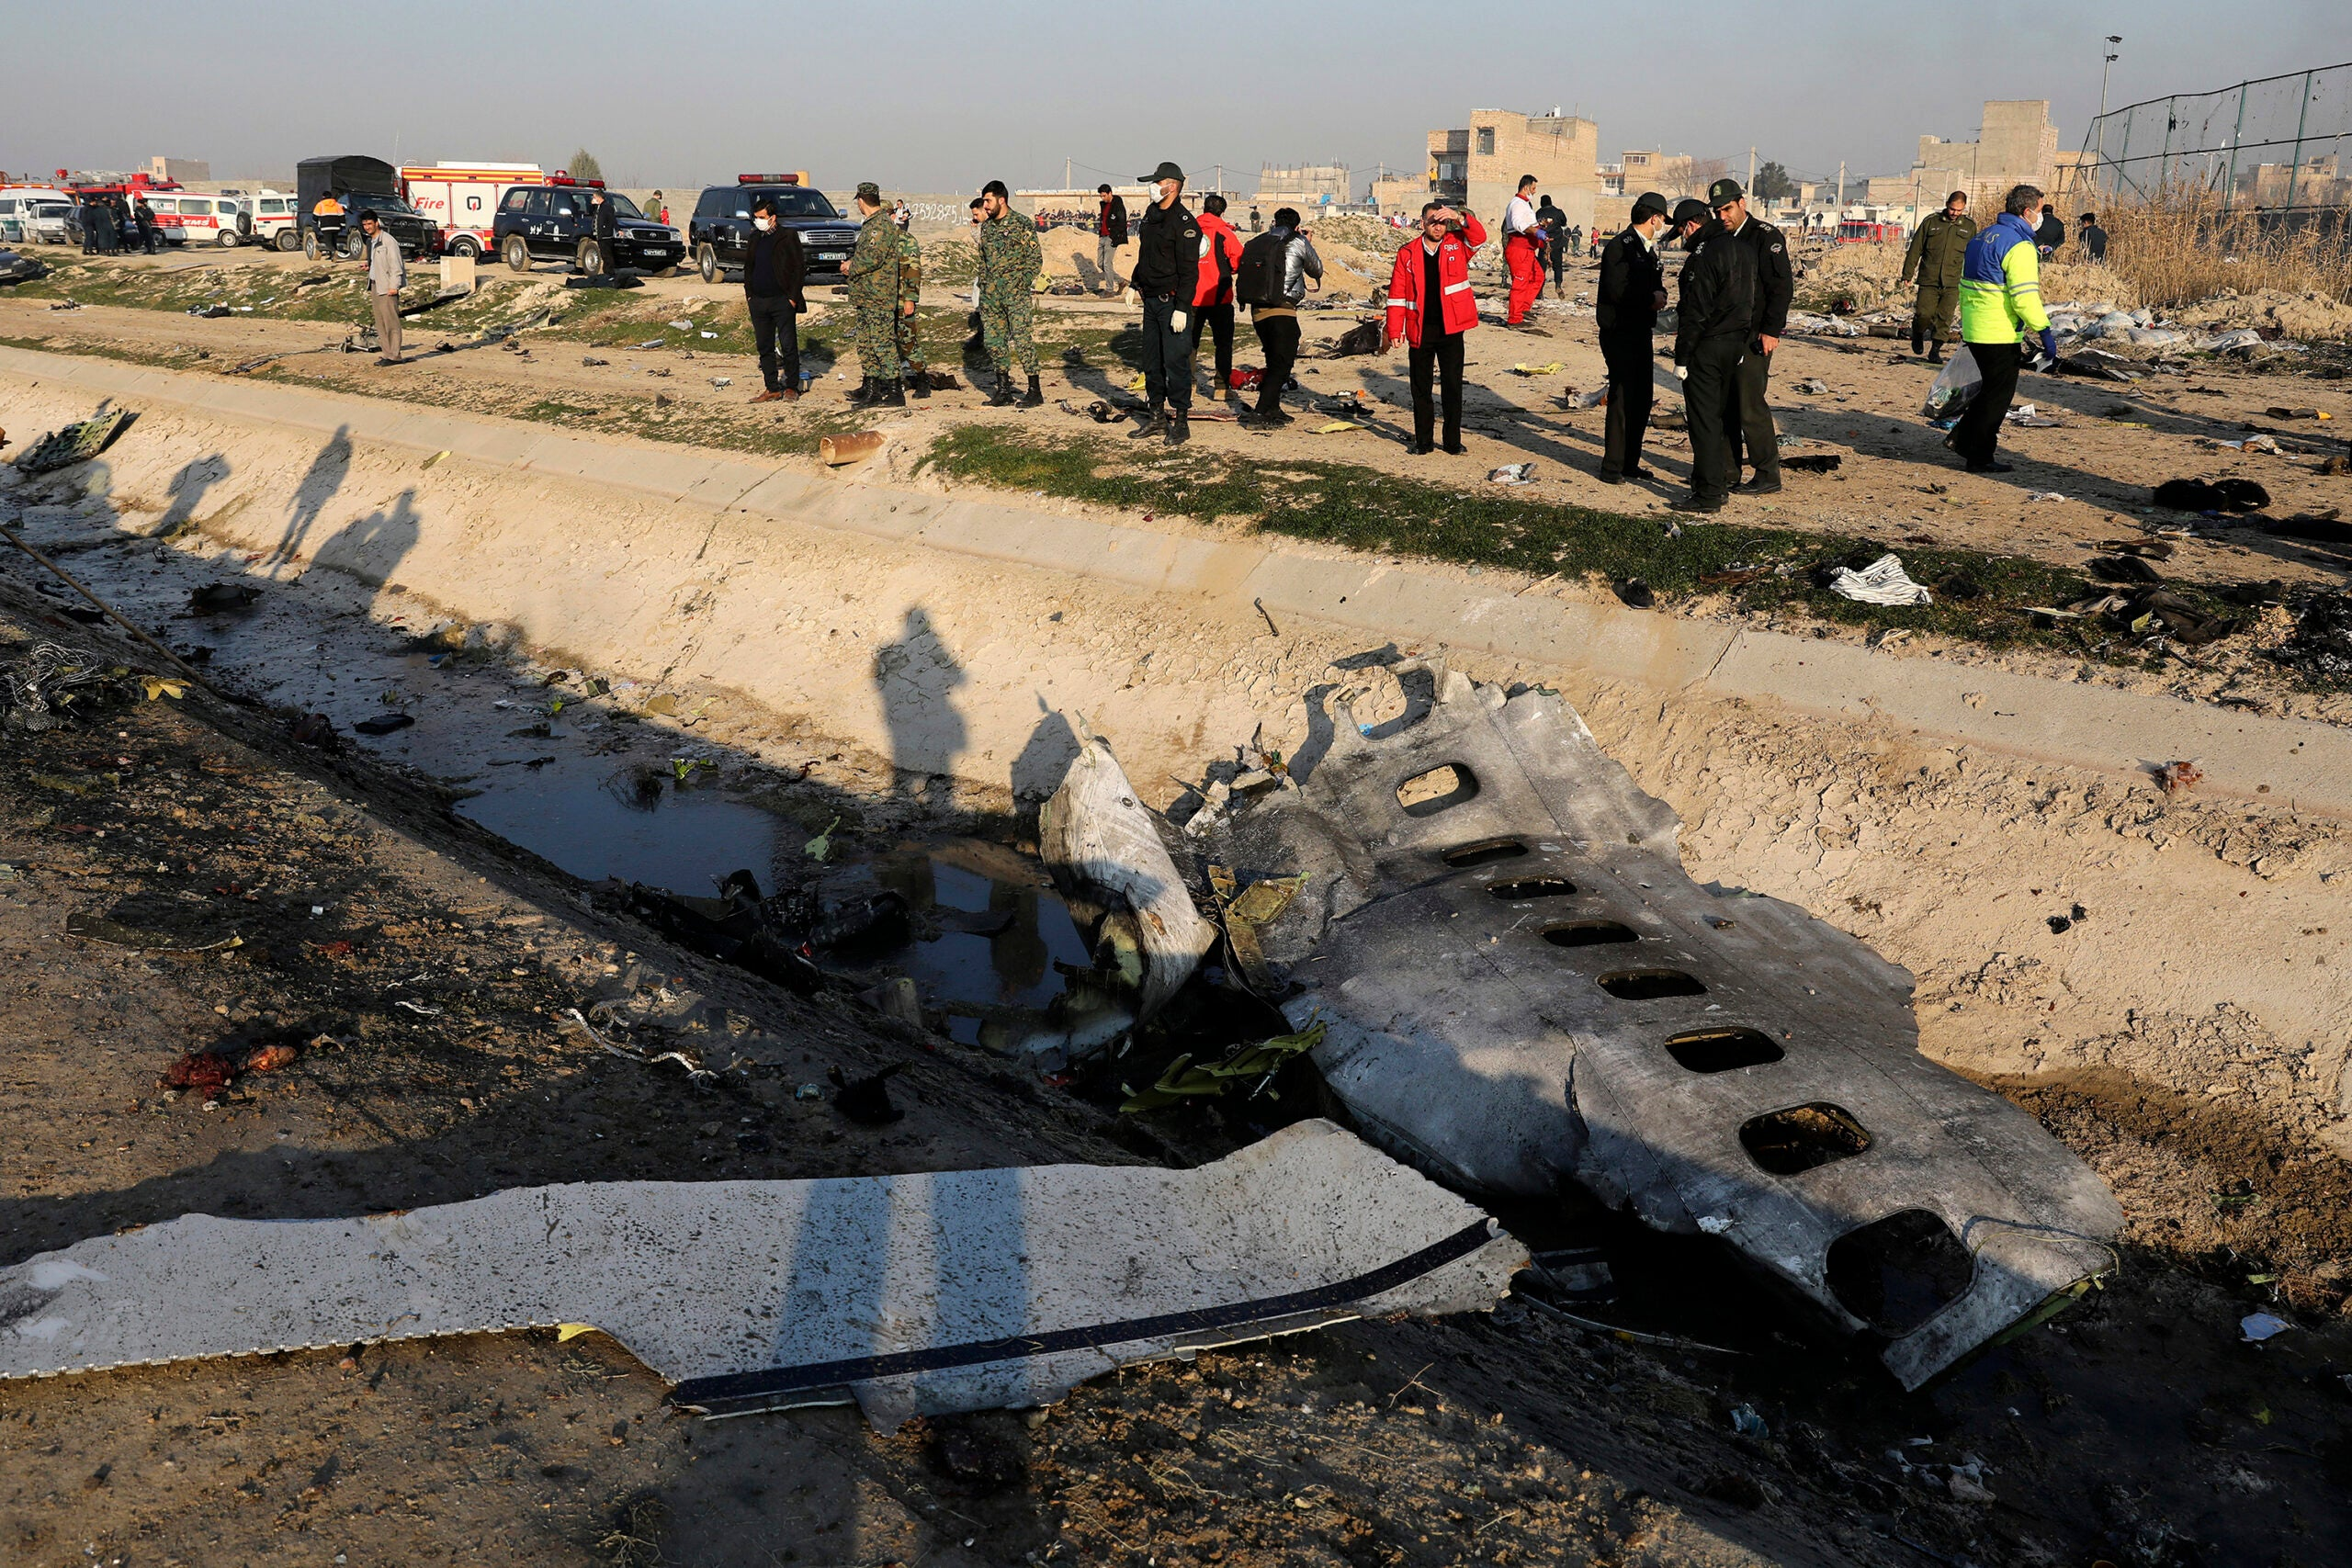 Iran says Ukrainian passenger plane shot down in January was hit by two missiles 25 seconds apart